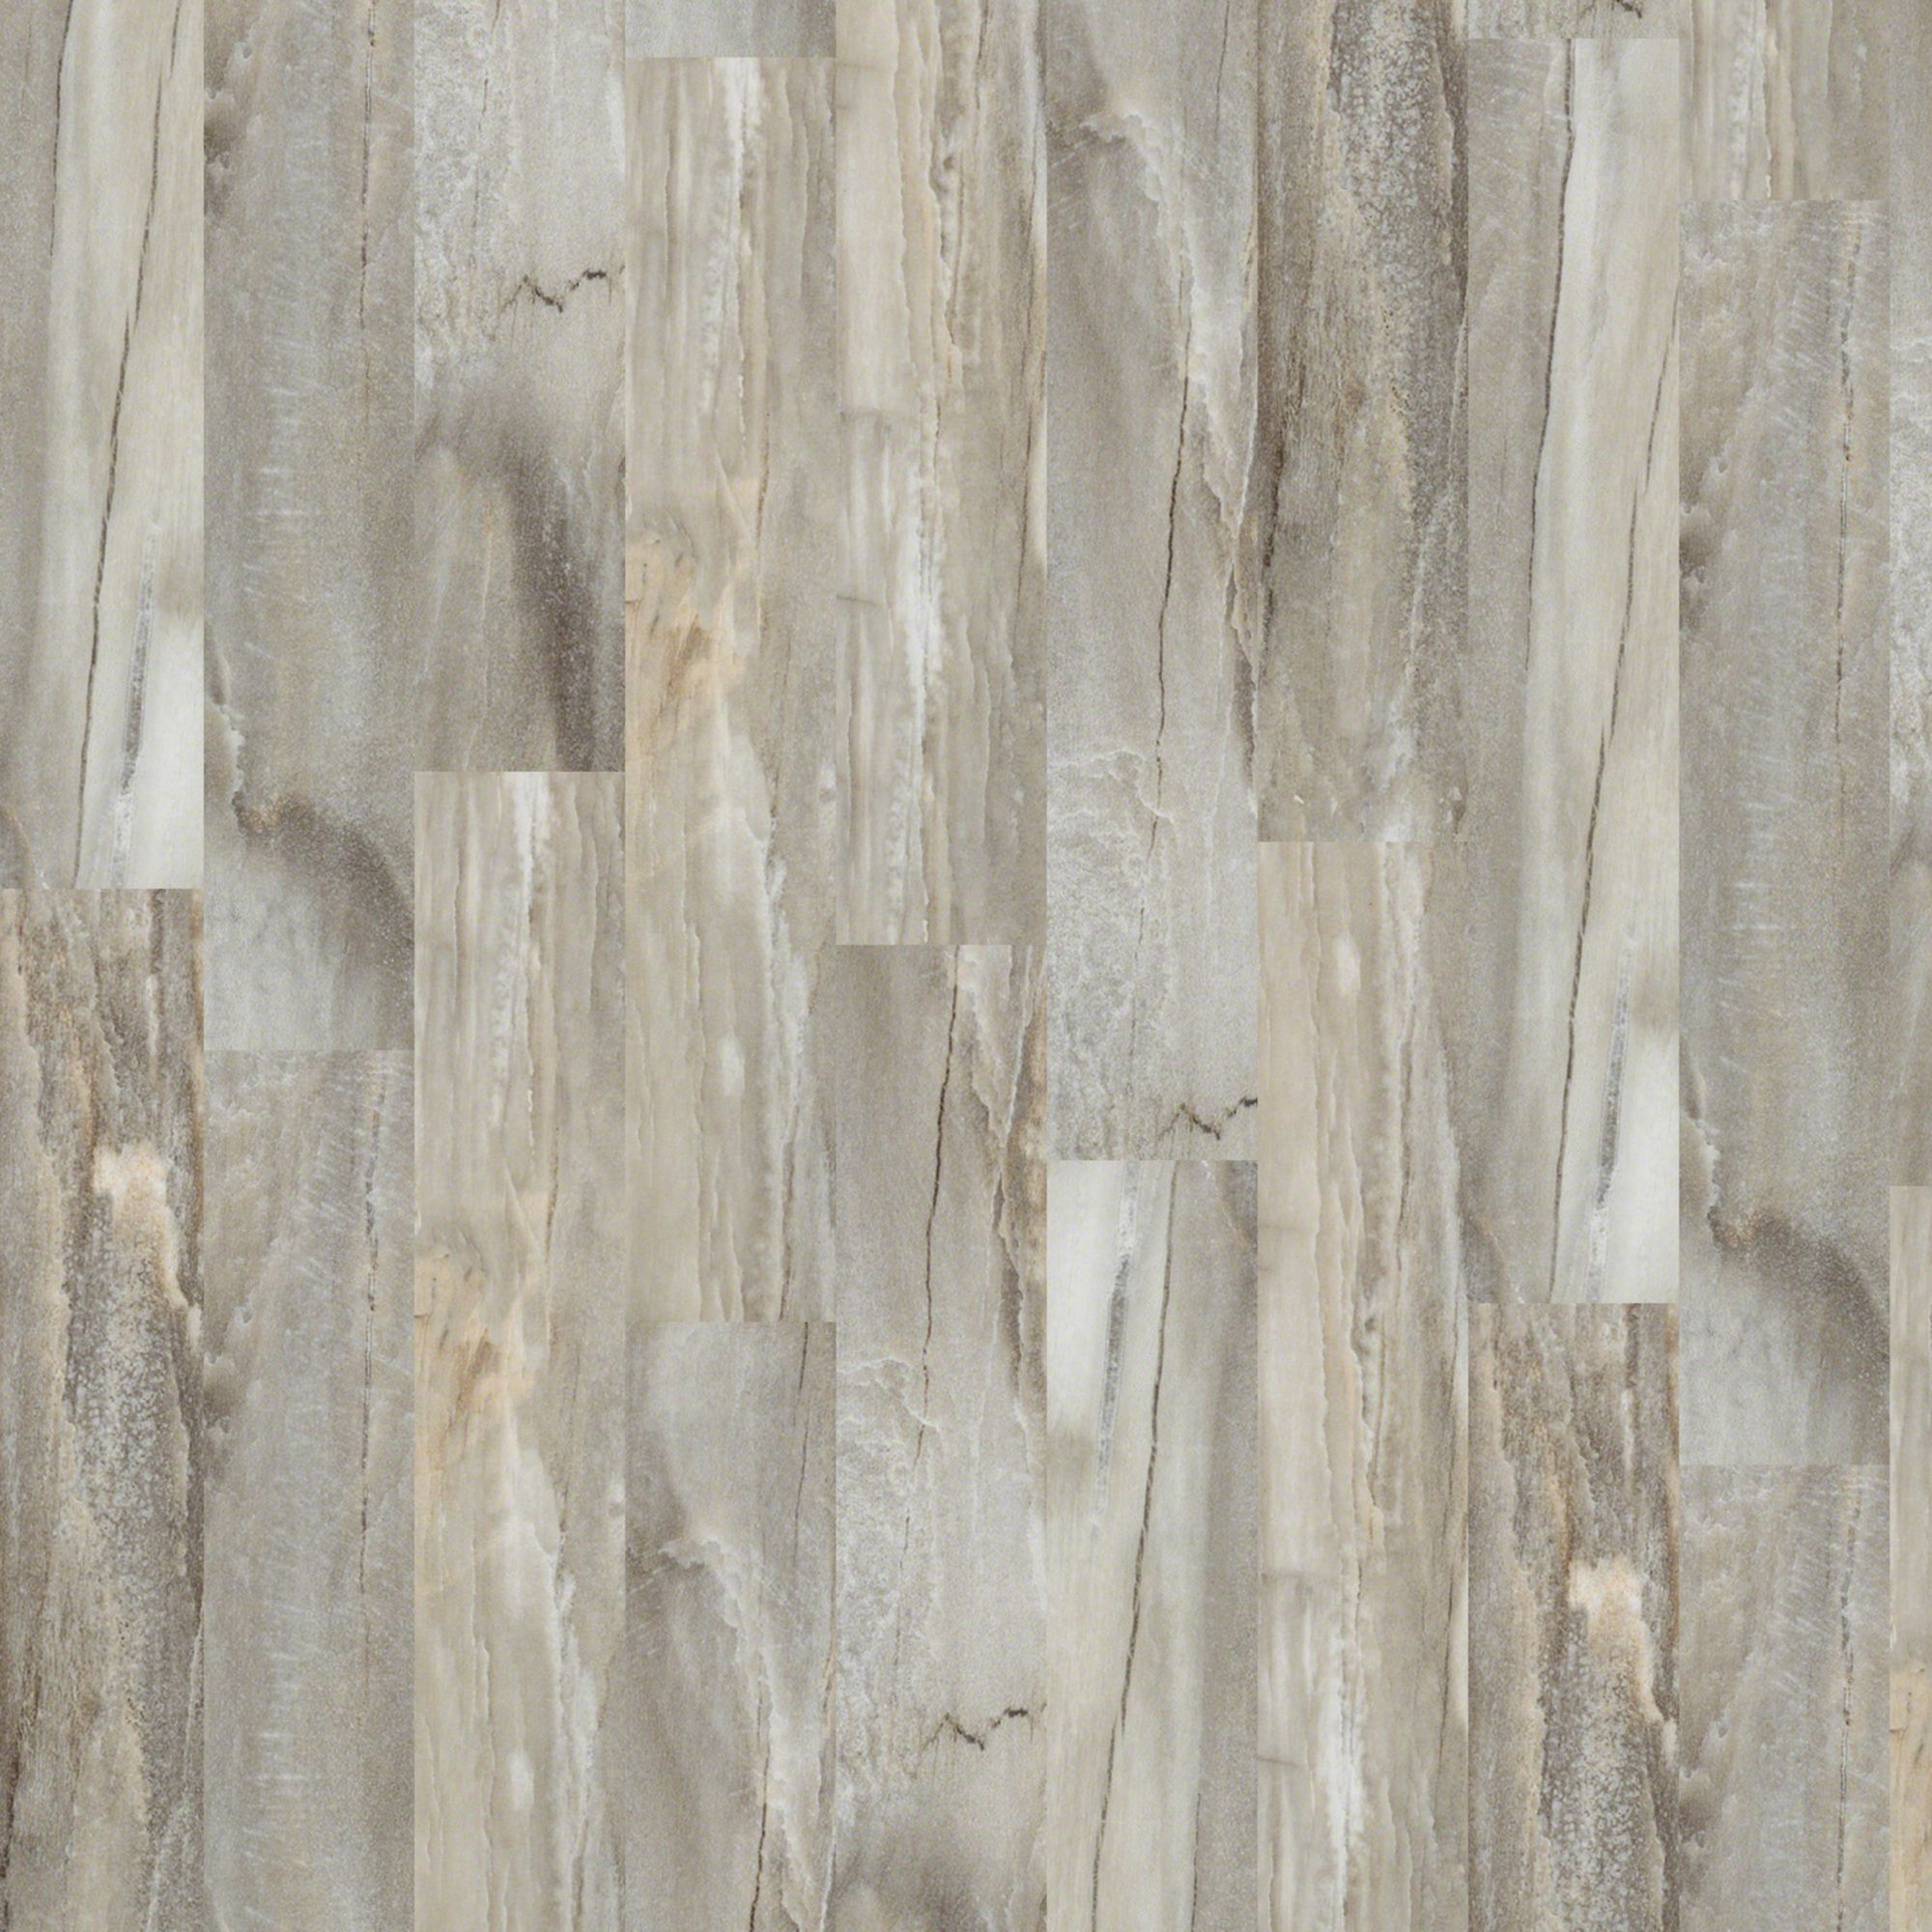 Stone fusion sa389 portabello vinyl flooring vinyl plank lvt shaw luxury vinyl save at acwg on portabello easy style luxury vinyl plank tile floors call for the lowest prices for your flooring project dailygadgetfo Choice Image